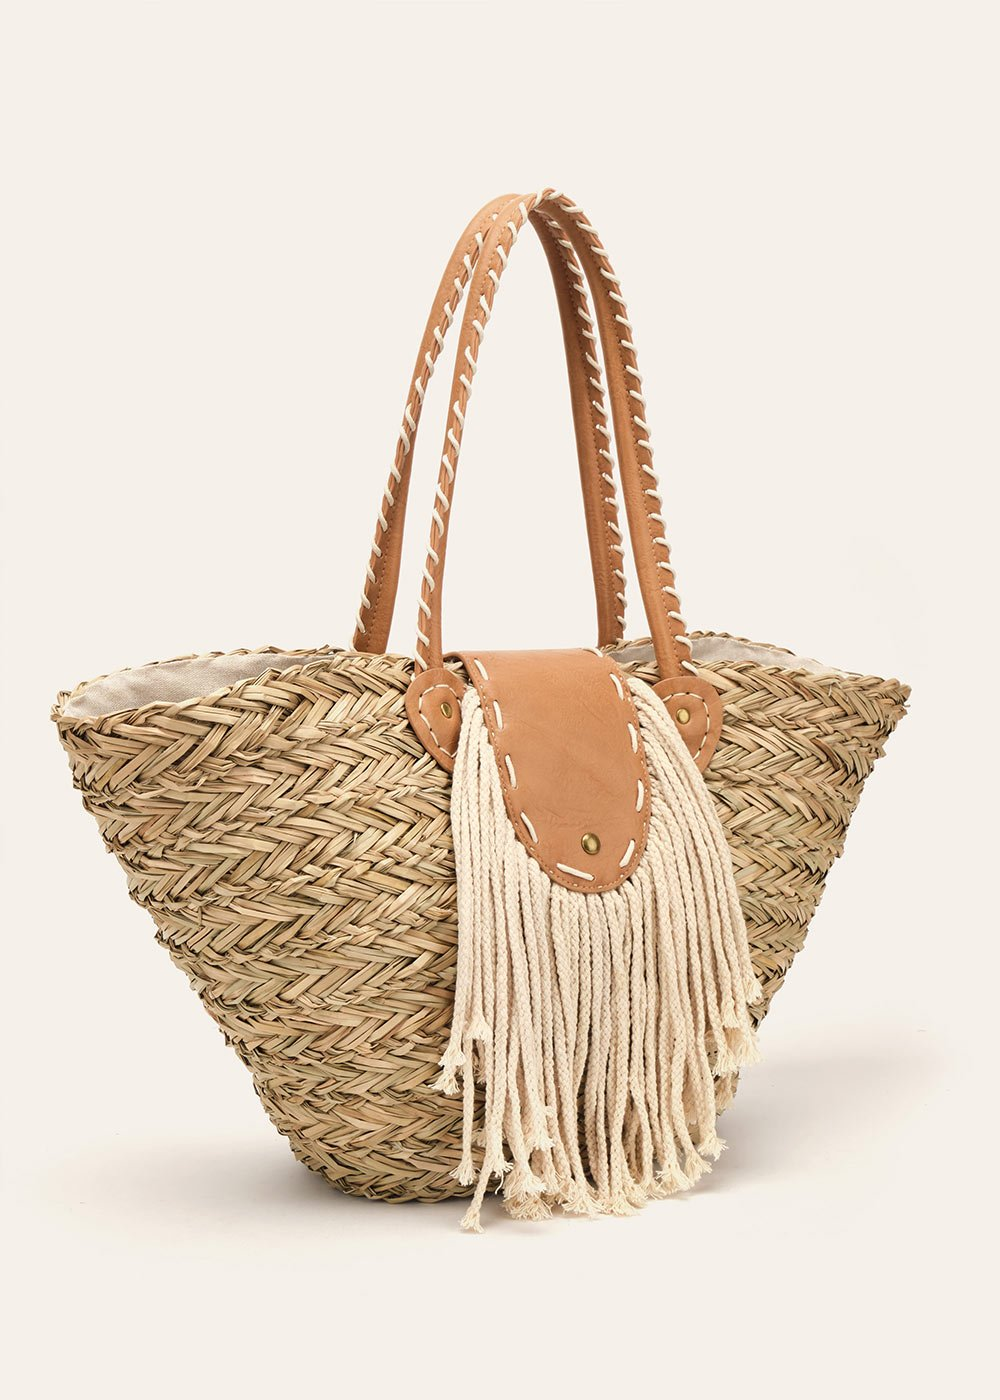 Bookie beach basket bag with fringes - Cammello / Beige - Woman